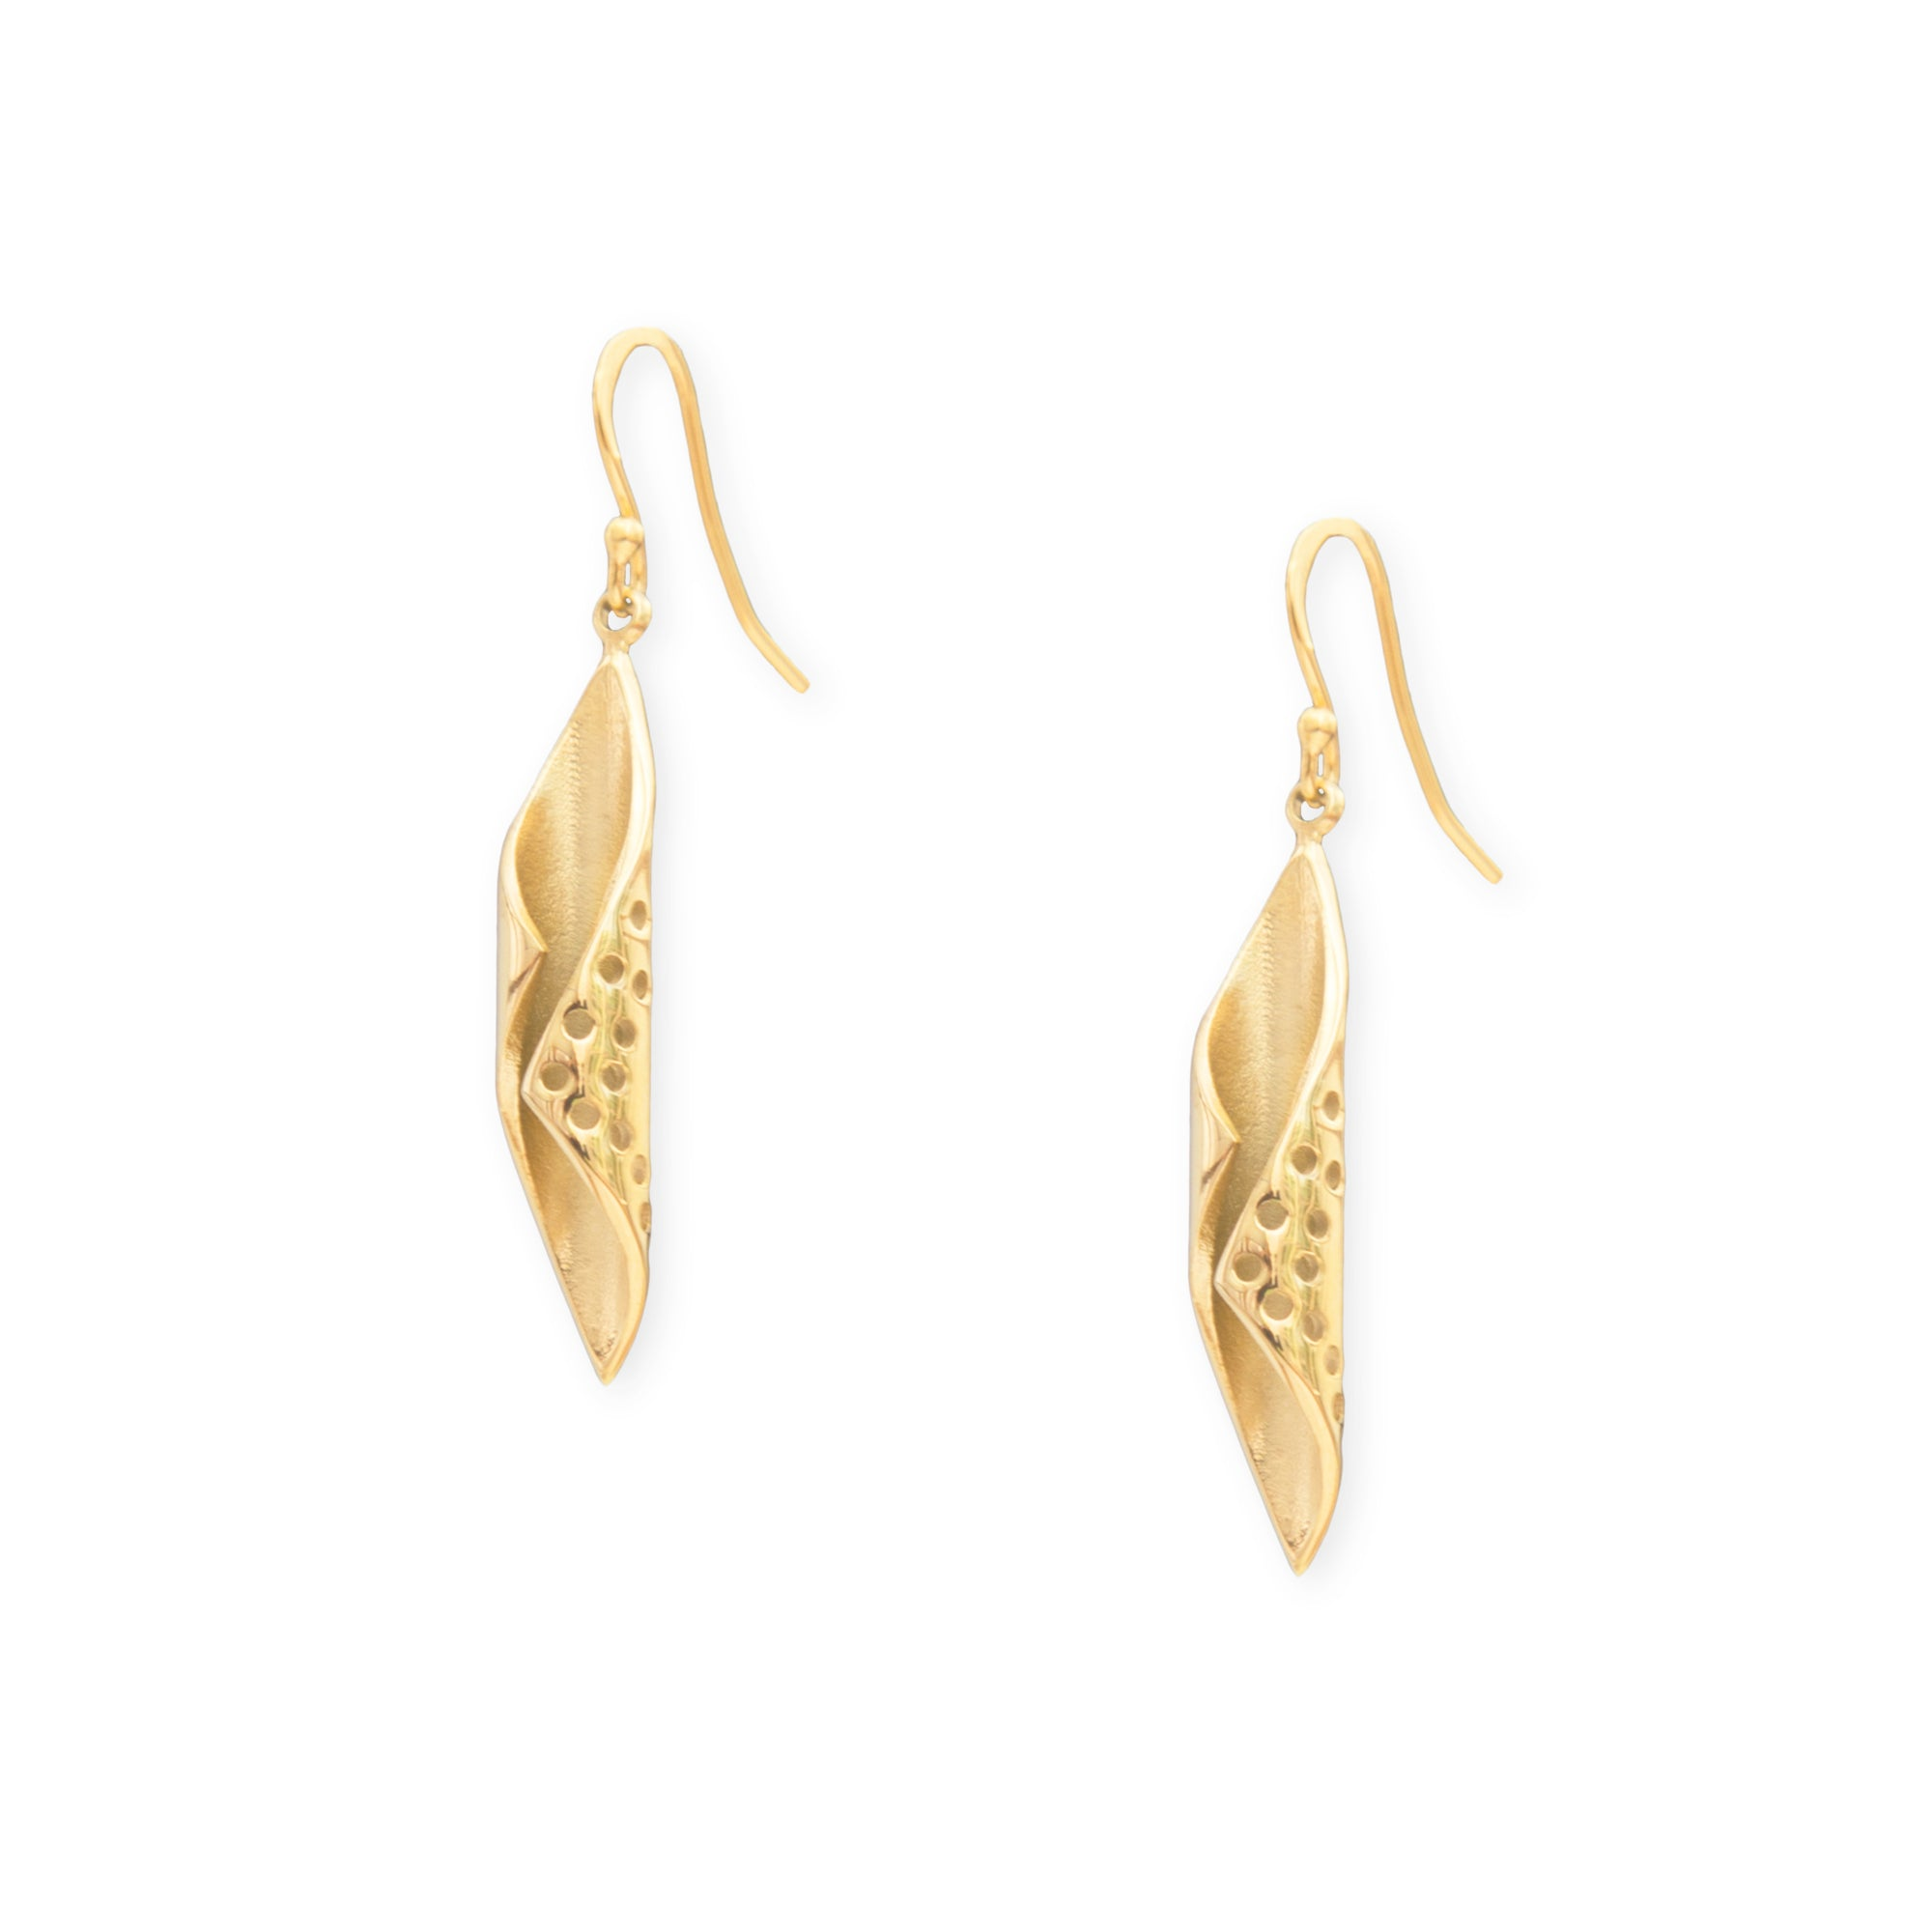 Eden Chrysalis earrings - gold plated curled chrysalis pendants on gold-plated hooks - Shop Ethical Jewellery & Fair Trade Gifts Melbourne at ONLY JUST